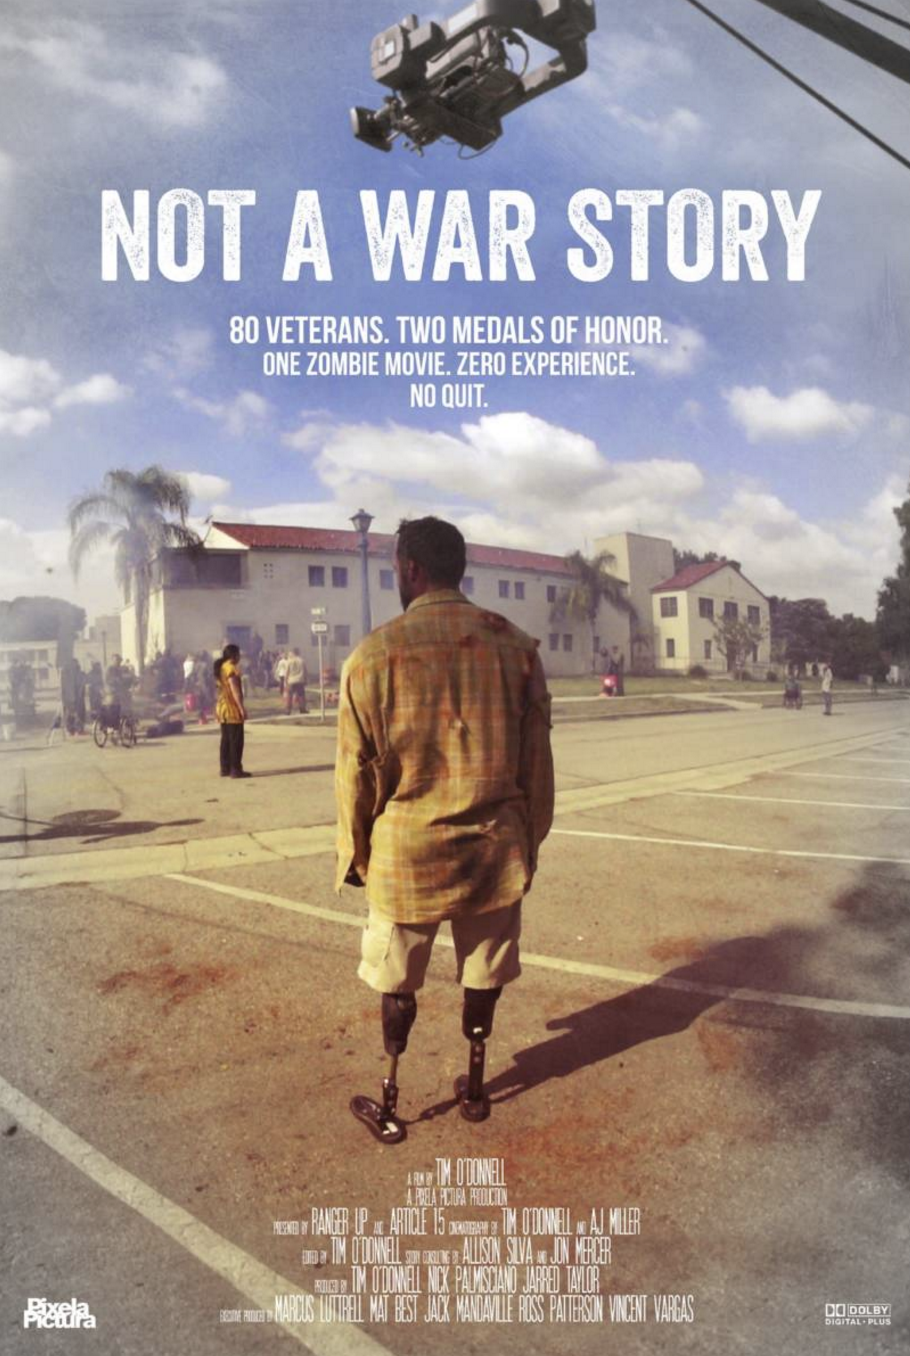 Nick Palmisciano - Producer of 'Not A War Story'